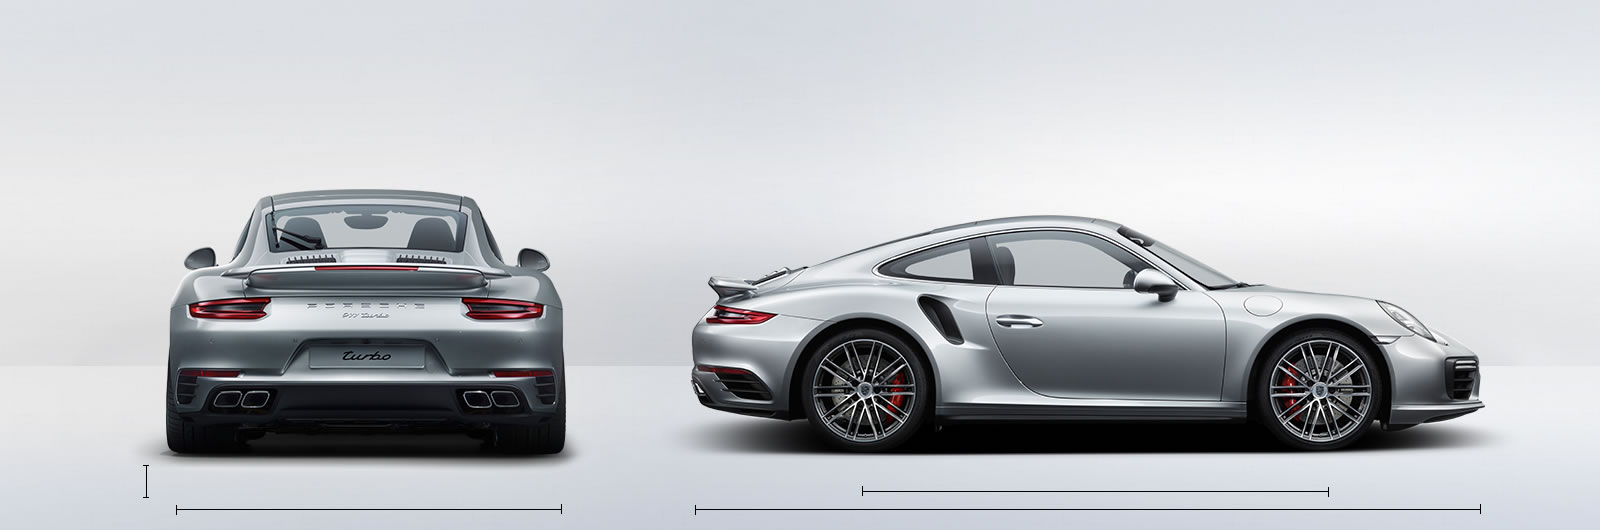 911 Turbo Specifications